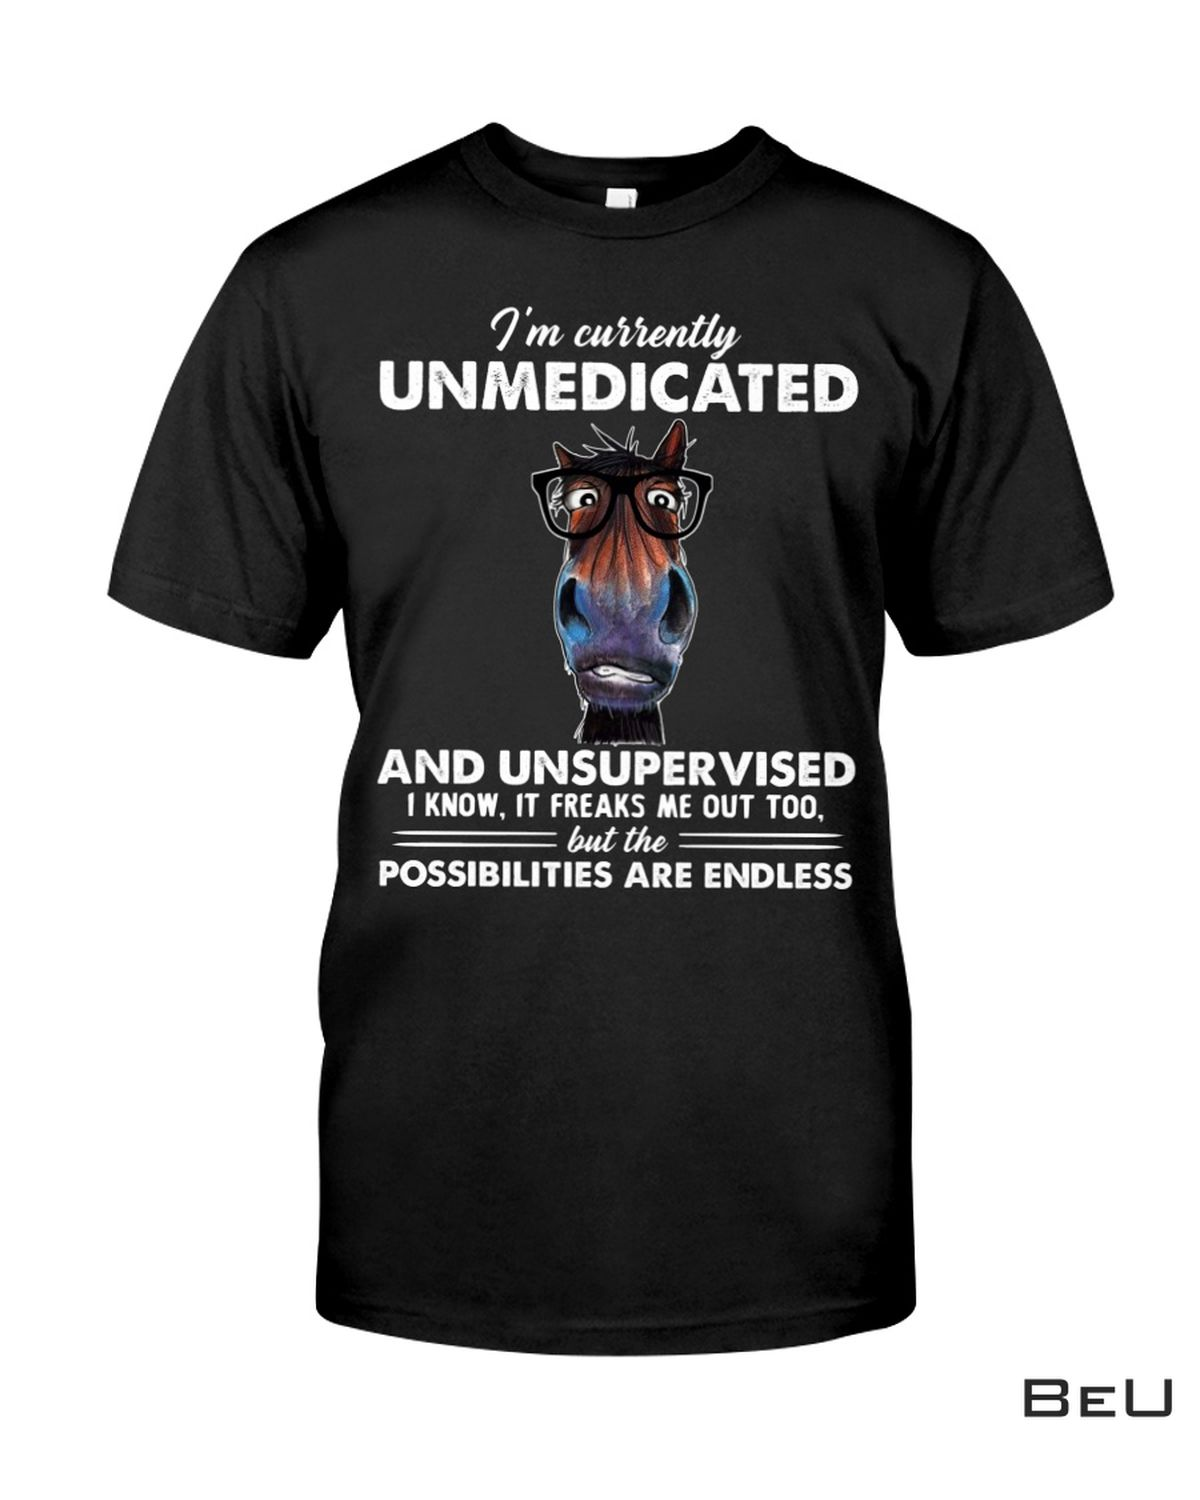 I'm Currently Unmedicated And Unsupervised Funny Horse Shirt, hoodie, tank top